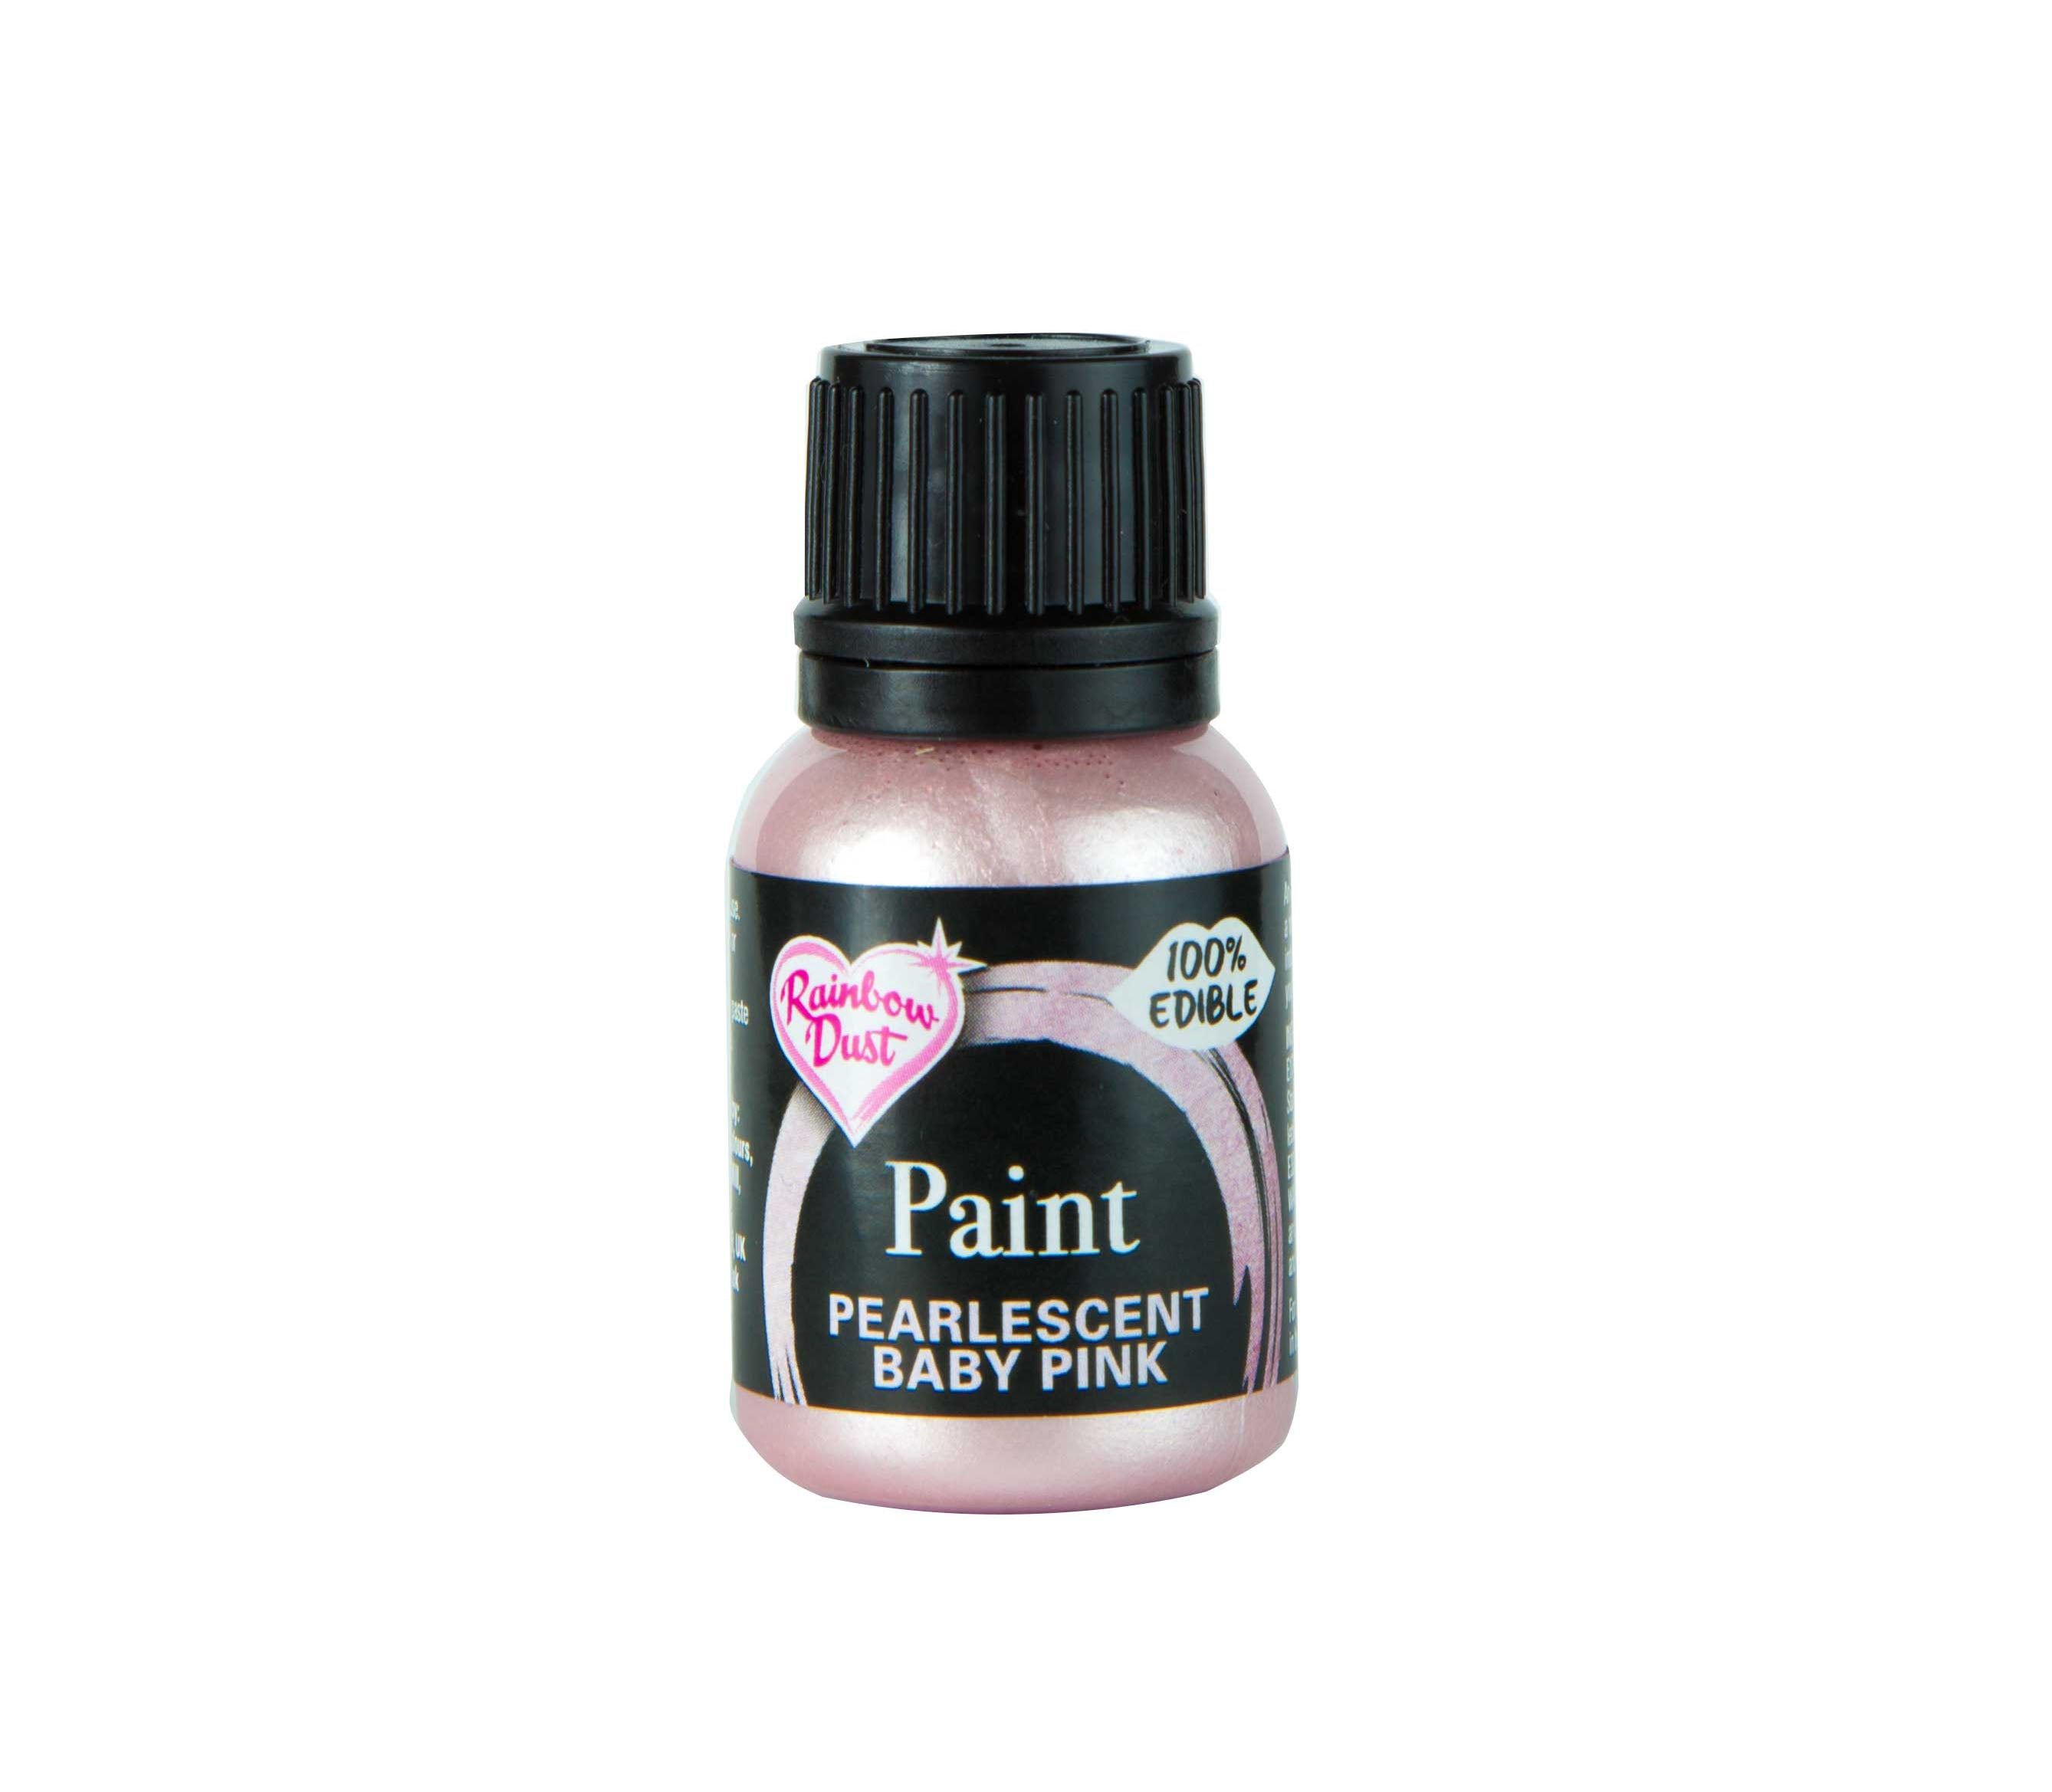 Edible Paints Pearl Baby Pink 25g